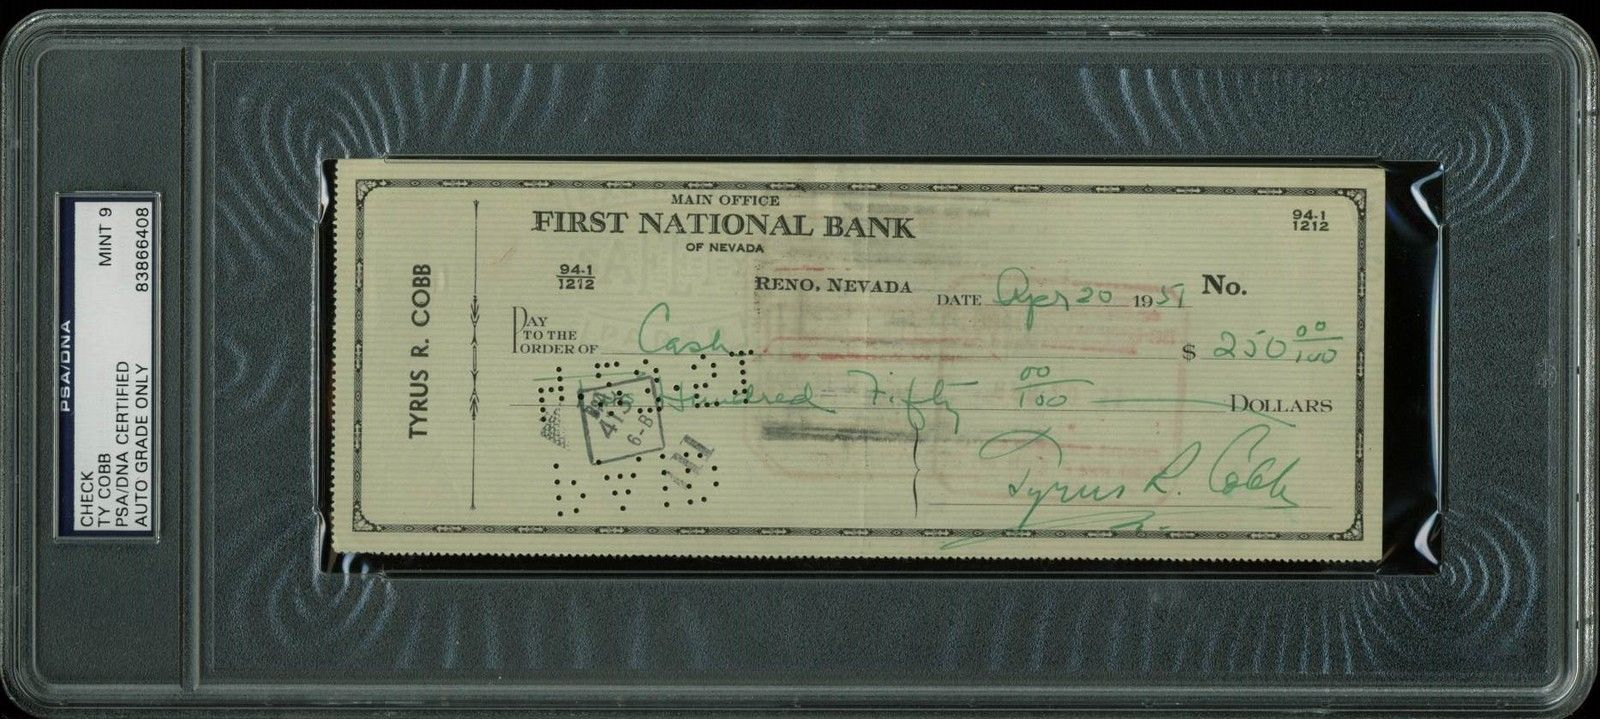 lot detail ty cobb signed hand written 1951 bank check psa dna graded mint 9. Black Bedroom Furniture Sets. Home Design Ideas